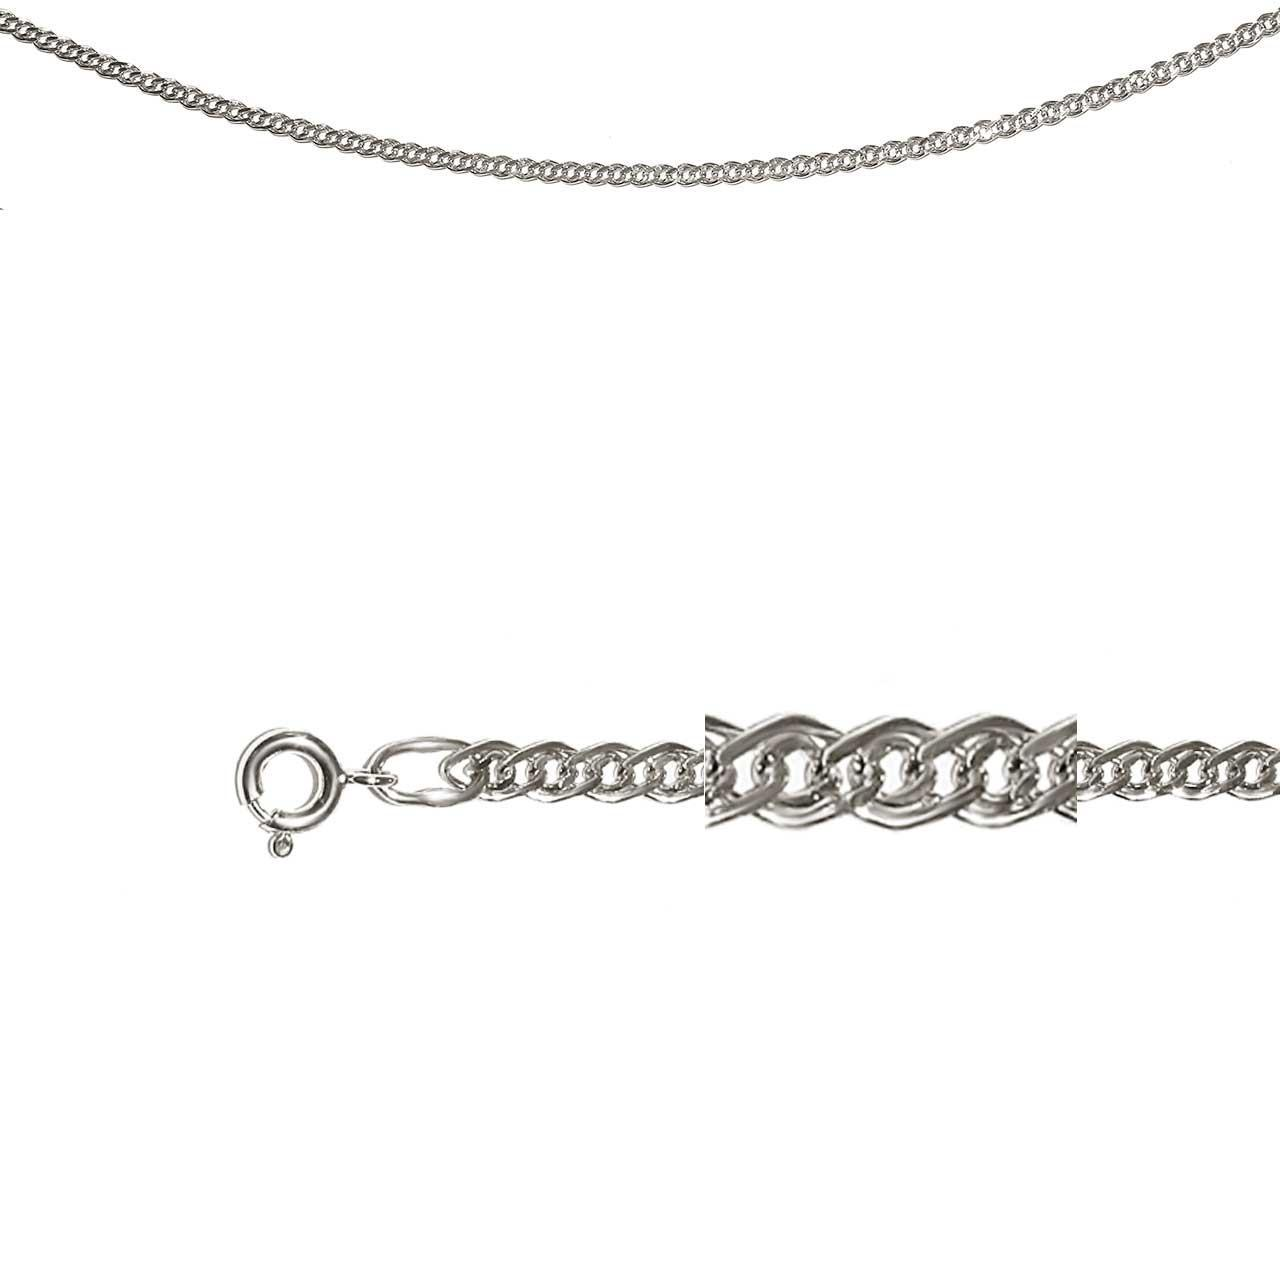 Nonna-link Chain (0.6 mm Silver Solid Wires)